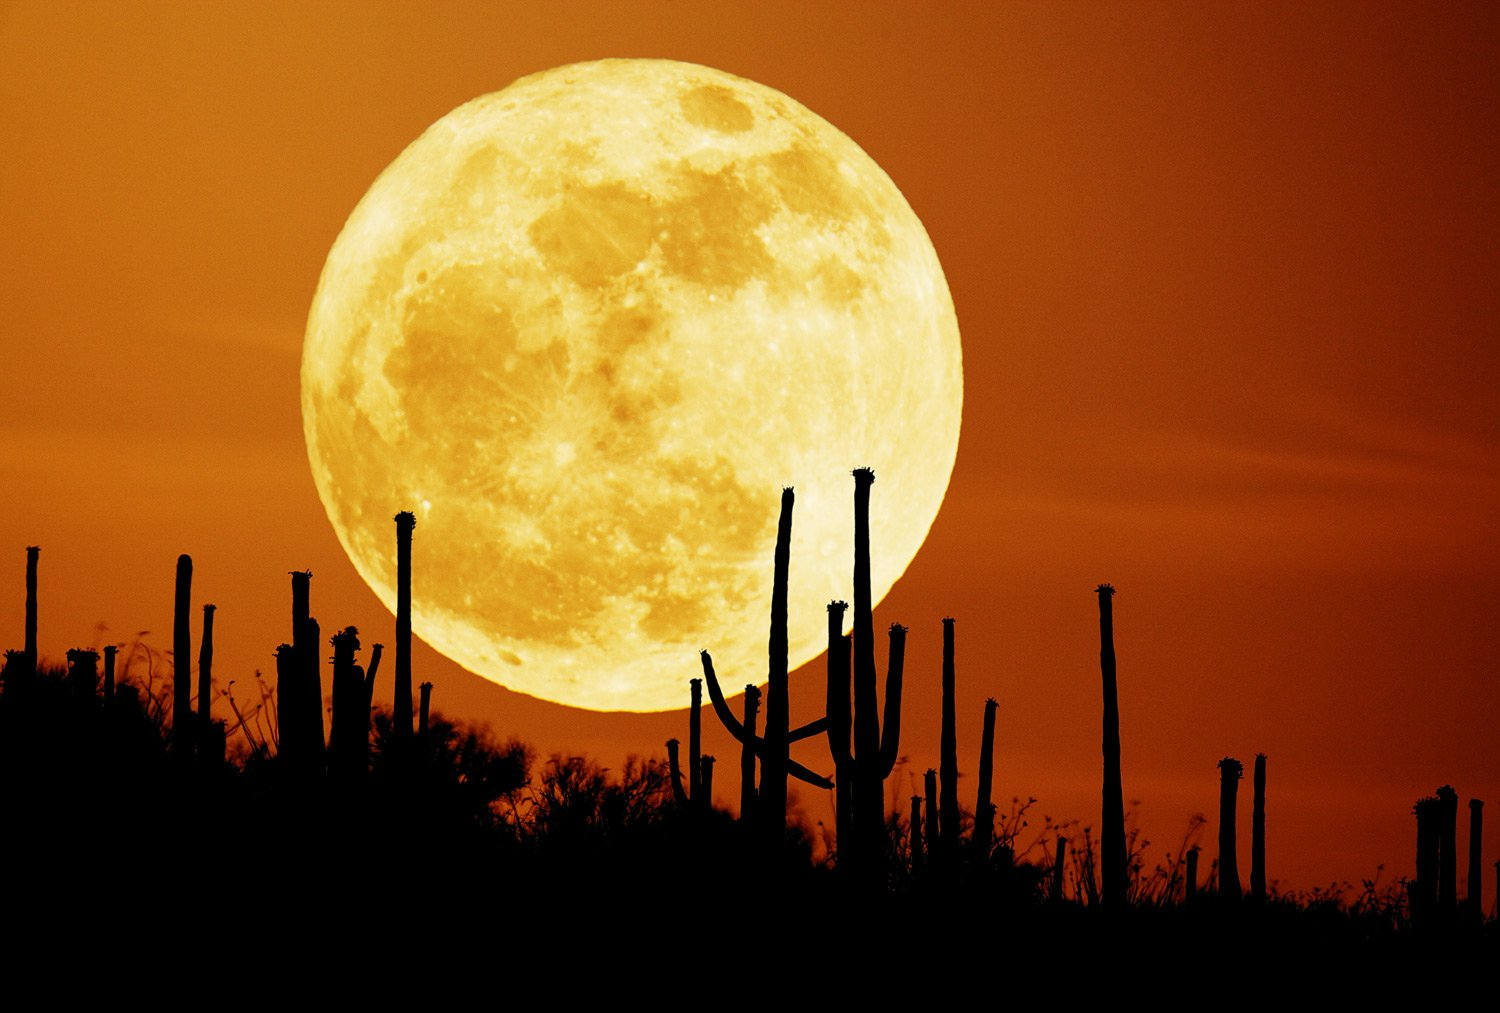 Harvest Moon, Harvest Moon september, Harvest Moon largest moon, what is the largest moon in the year, Harvest Moon largest moon in the year, Harvest Moon lunar eclipse, blood moon, blood moon lunar exclipse september 27 2015